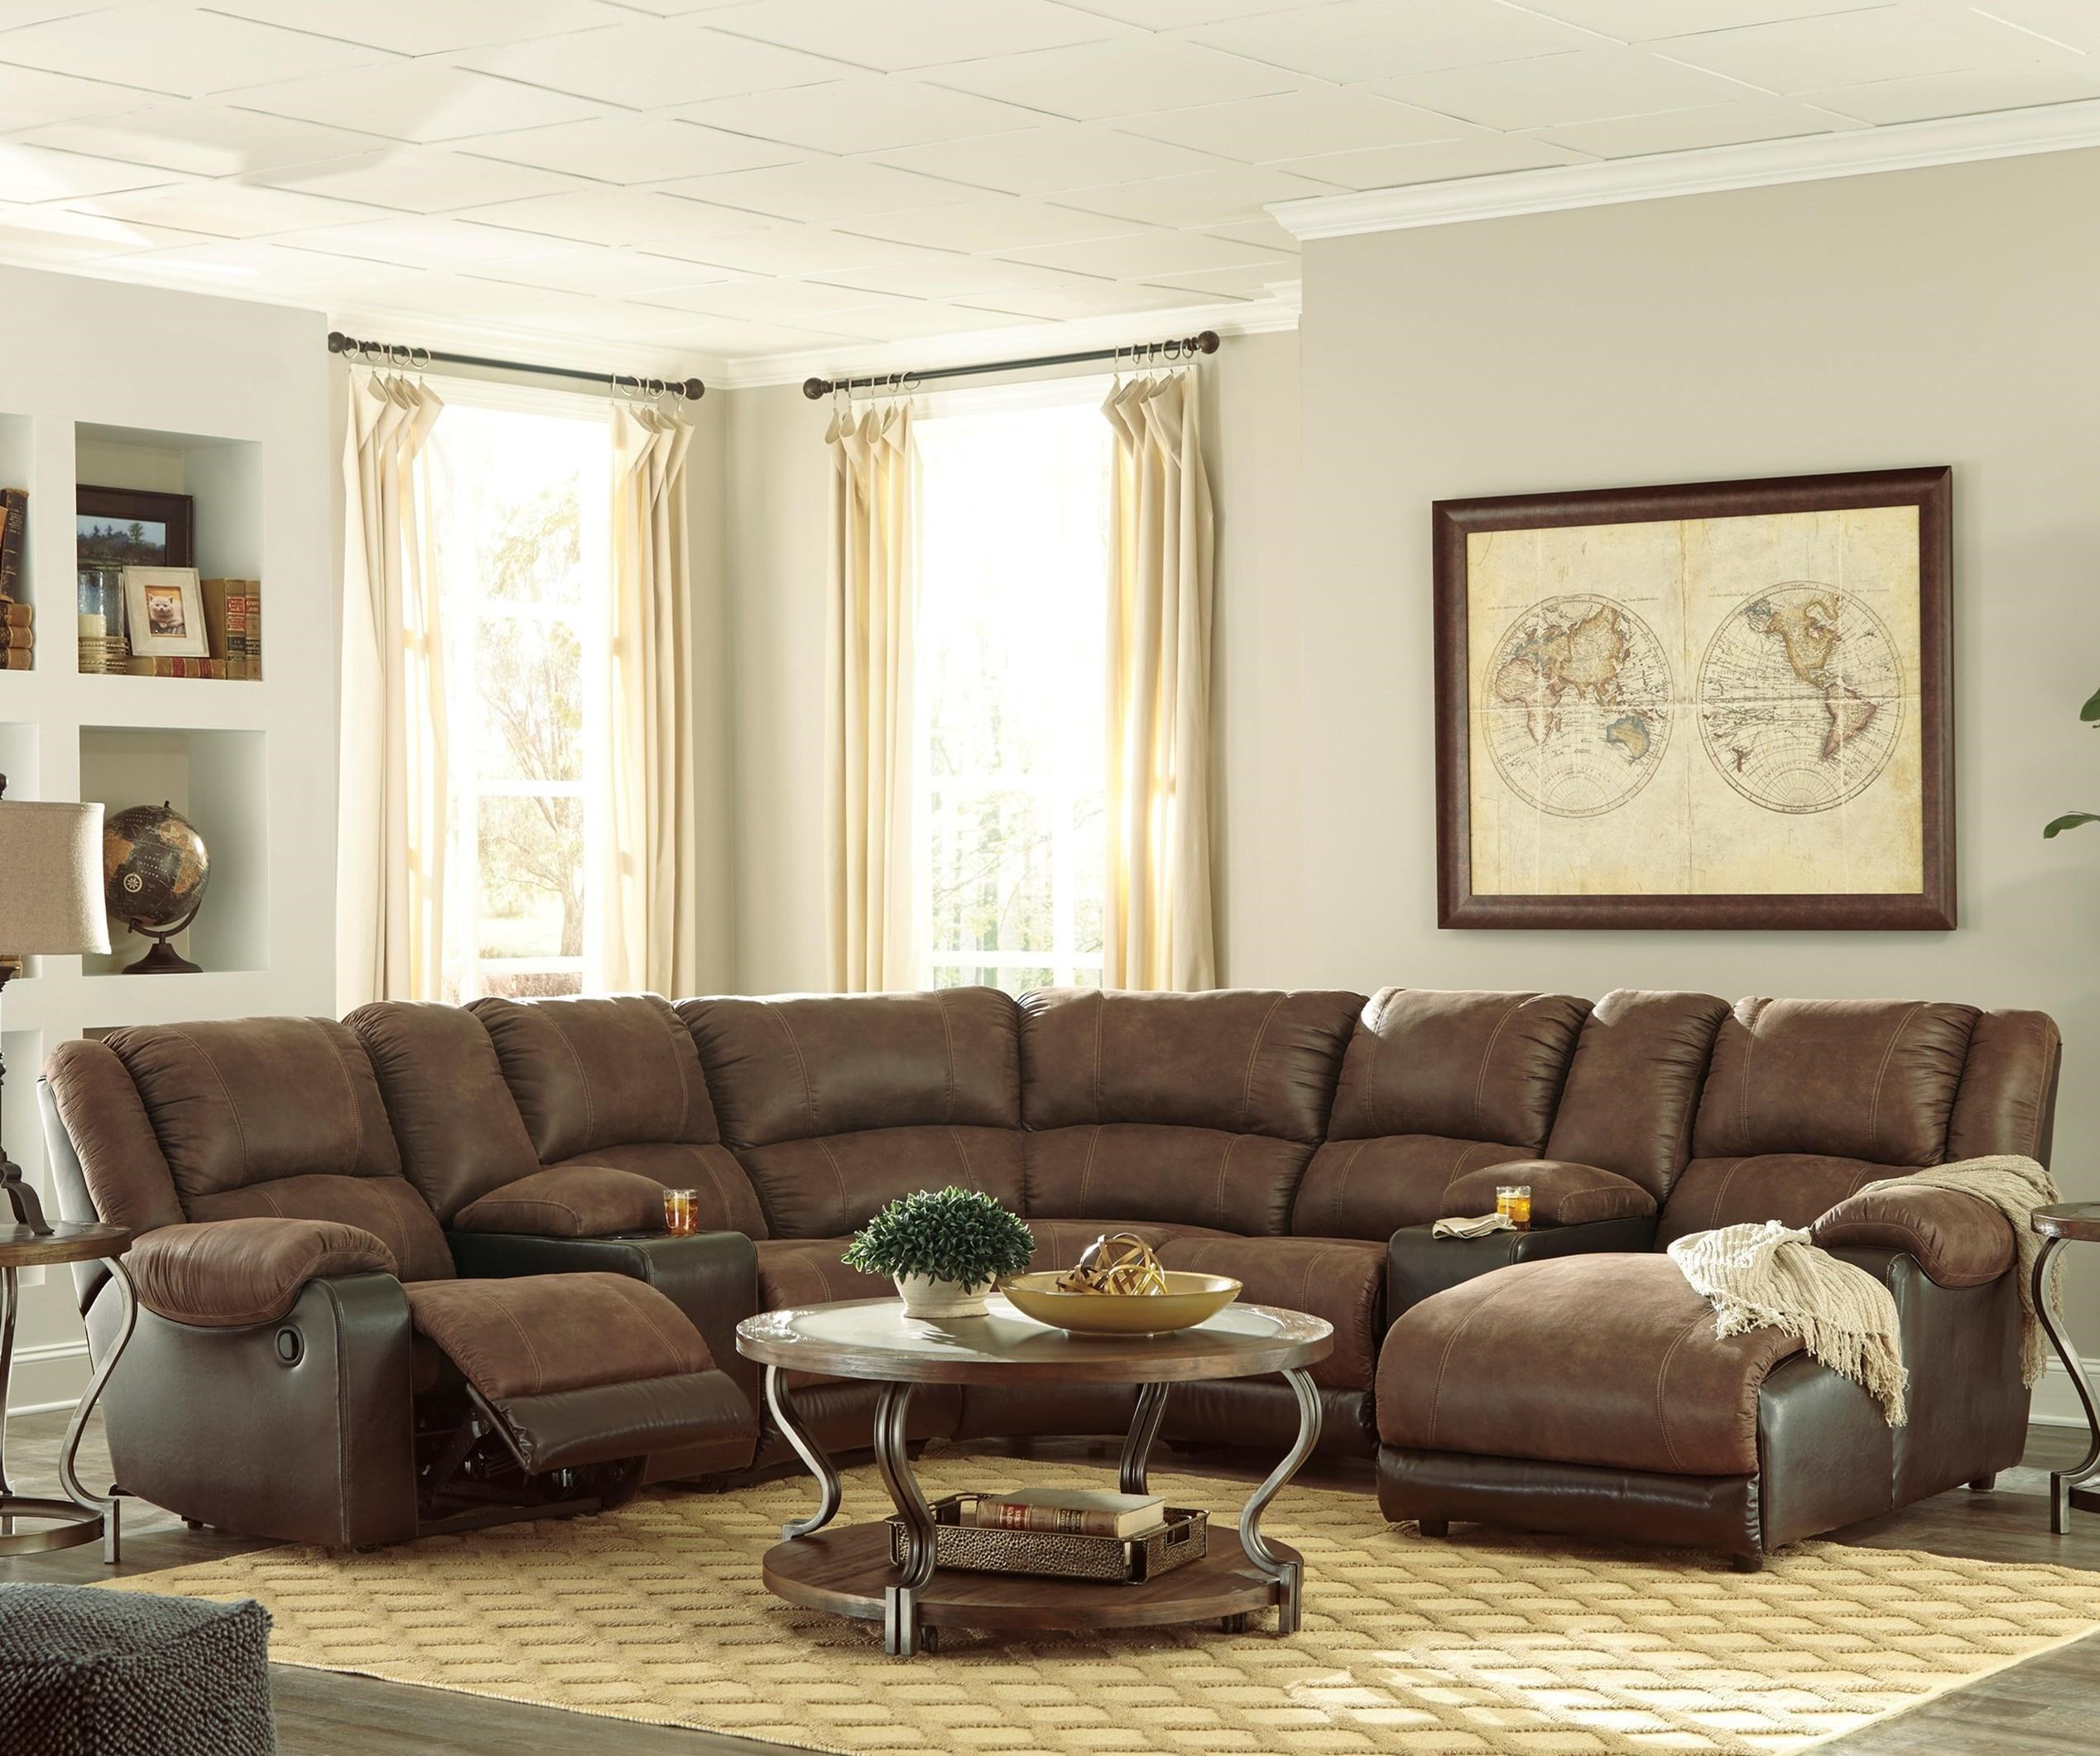 Signature Design by Ashley Nantahala Faux Leather Reclining Sectional with 2 Consoles \u0026 Chaise  sc 1 st  Value City Furniture & Signature Design by Ashley Nantahala Faux Leather Reclining ... islam-shia.org